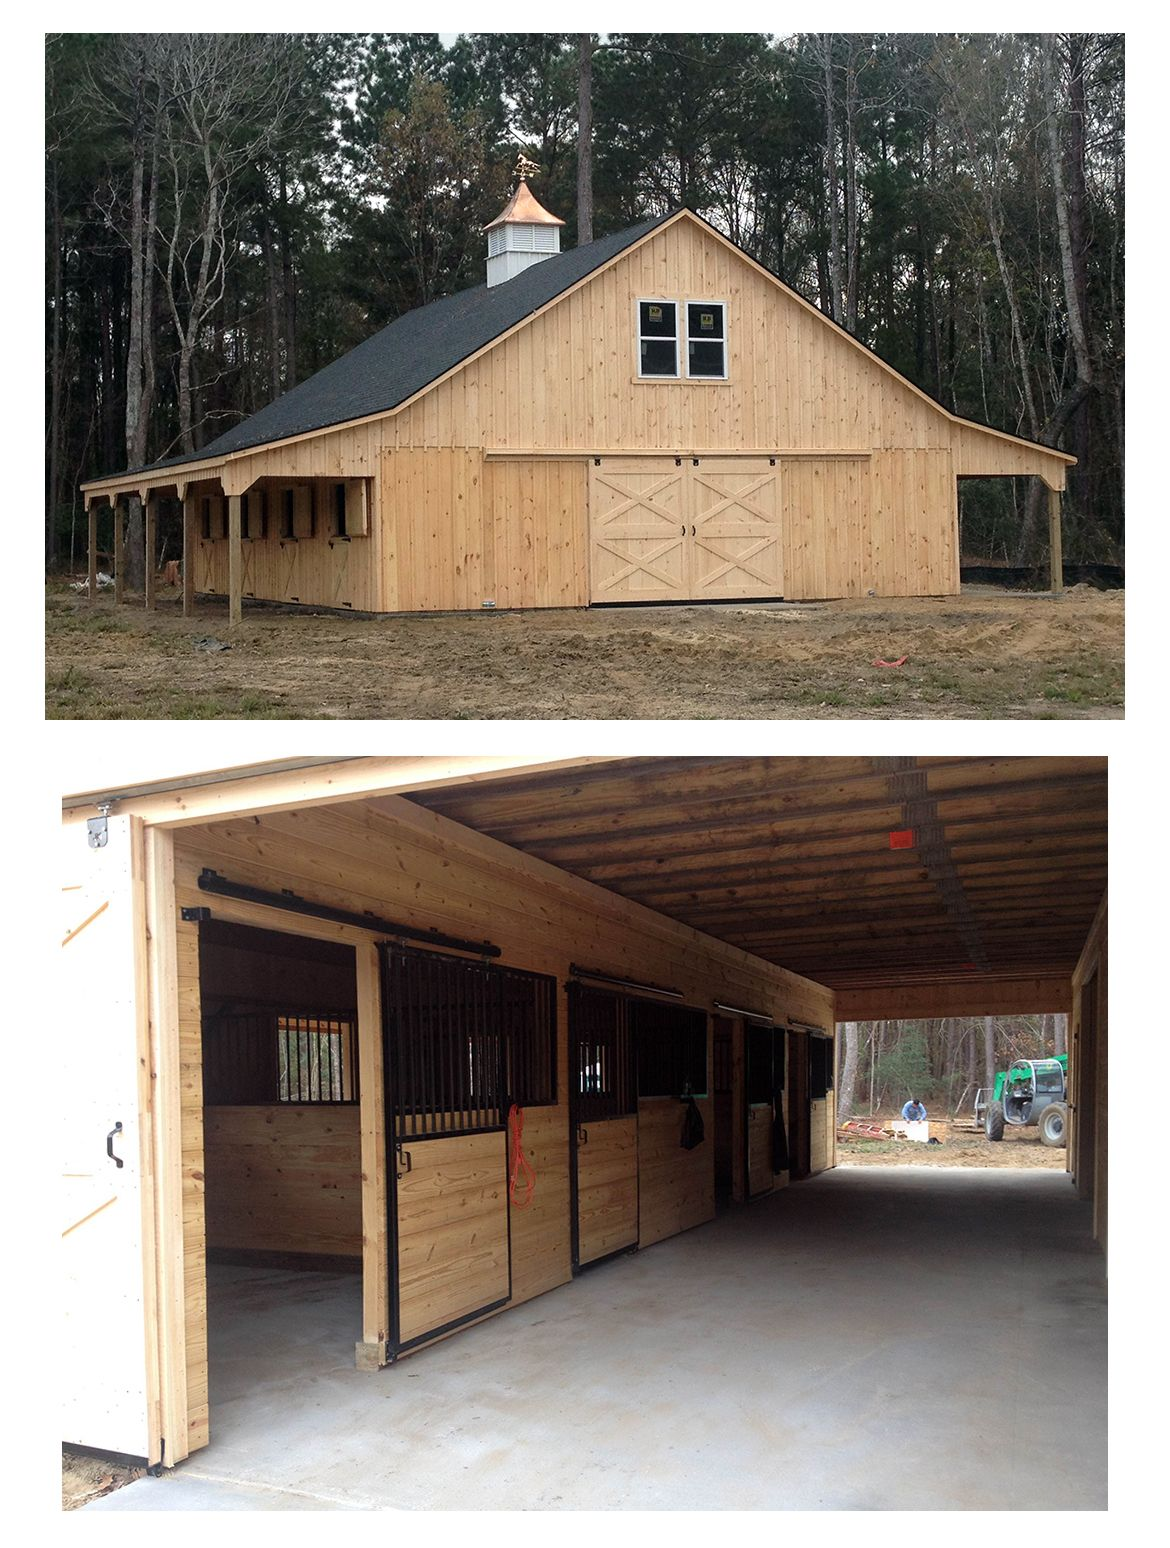 36x48 high profile modular horse barn includes 2 8 overhangs 4 12x12 stalls 12x12 tack feed room 12x12 lined wash stall 12x24 living quarters on